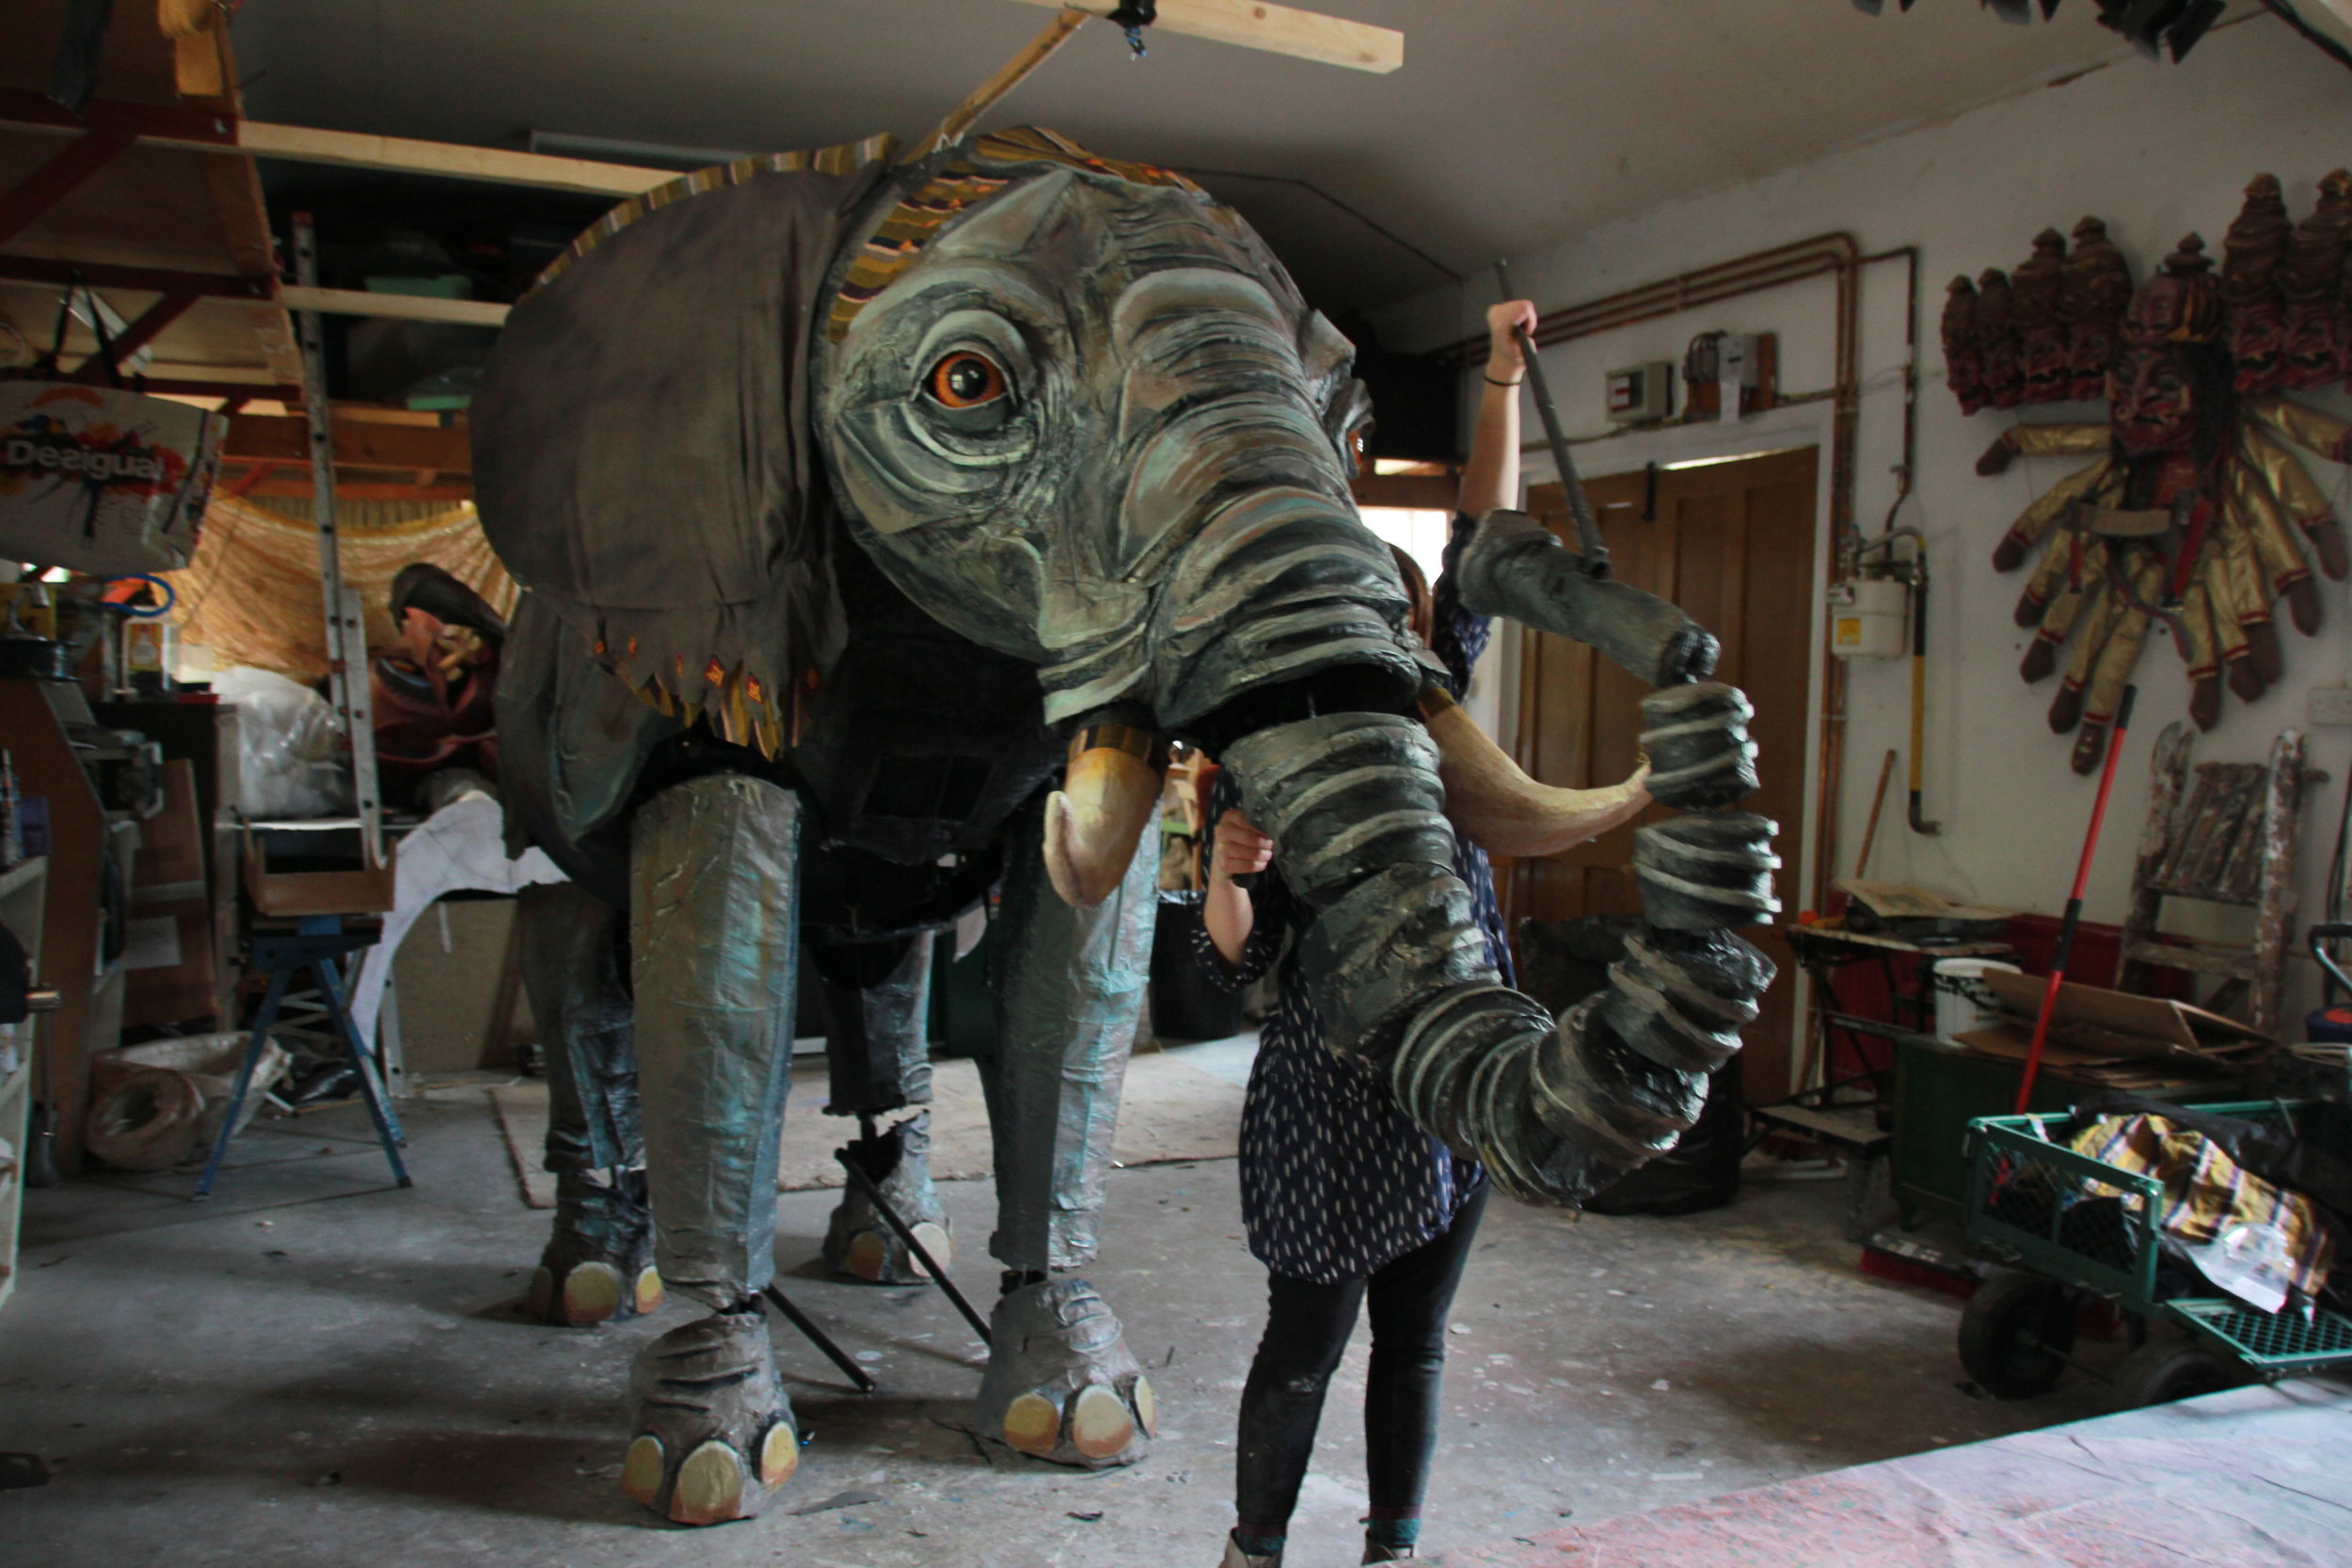 The Elephant Puppet